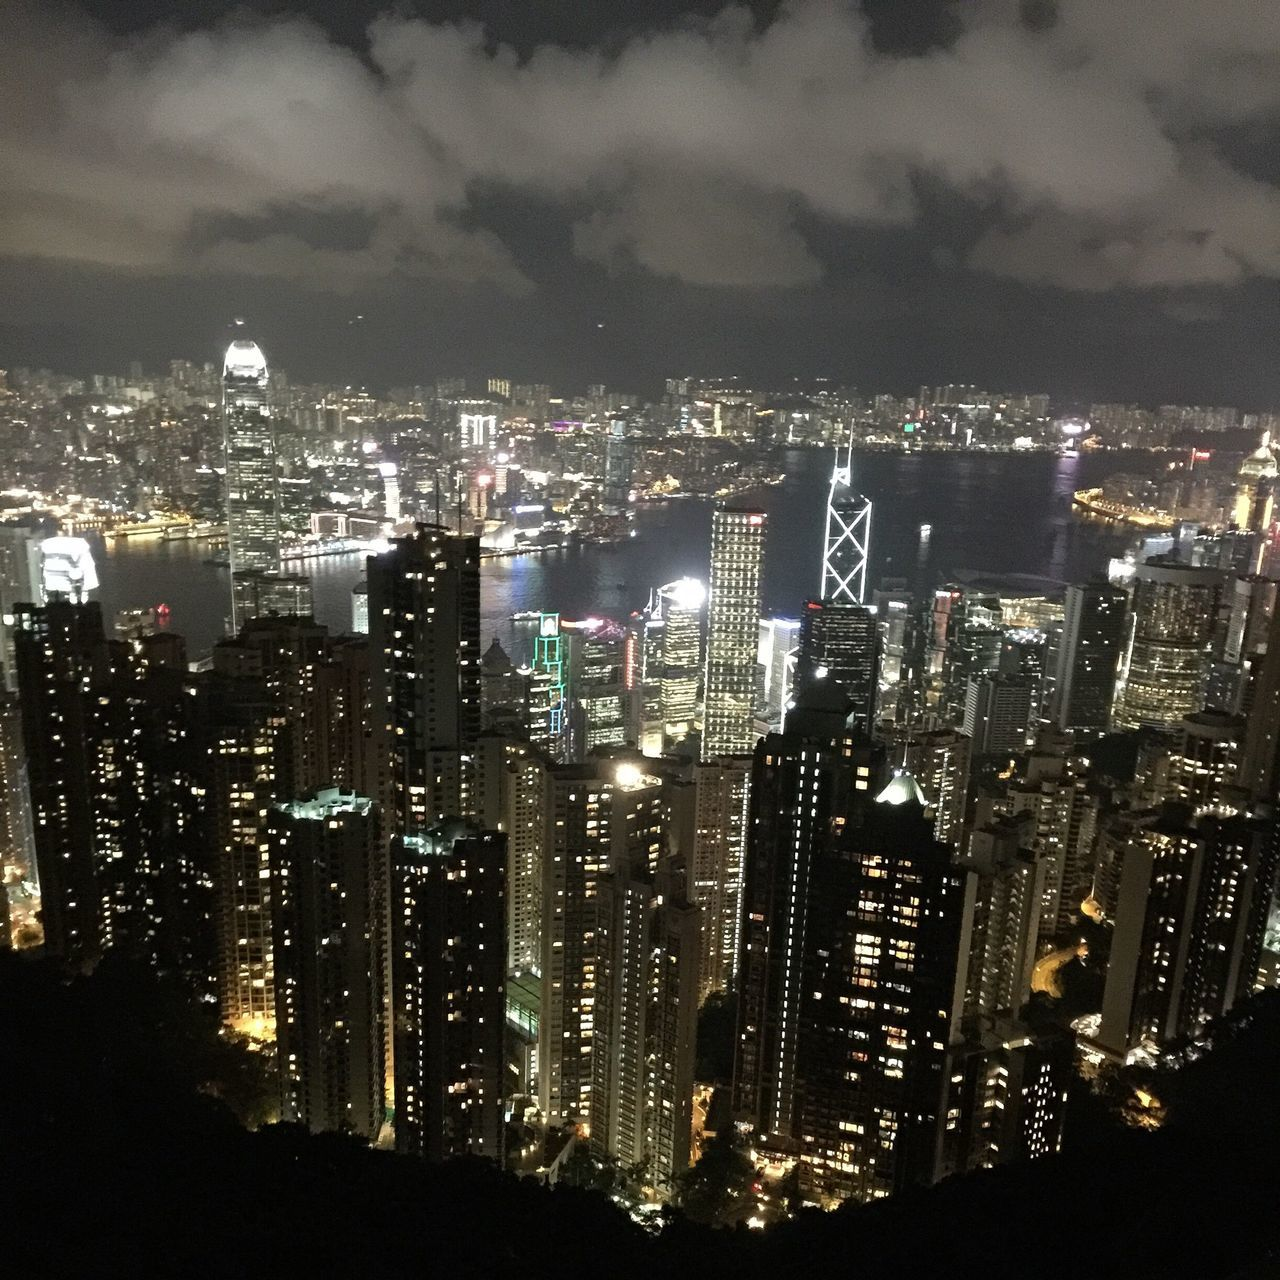 View from the peak VictoriaPeak Victoriapeakhongkong Viewfromthetop Thepeak HongKong Hong Kong CityOfLights  Landscape_photography Benzjourney Iphonephotography IPhoneography Pictureoftheday Random Instaphoto Iphone6plus Iphoneonly Randomshot Landscape_Collection Landscape